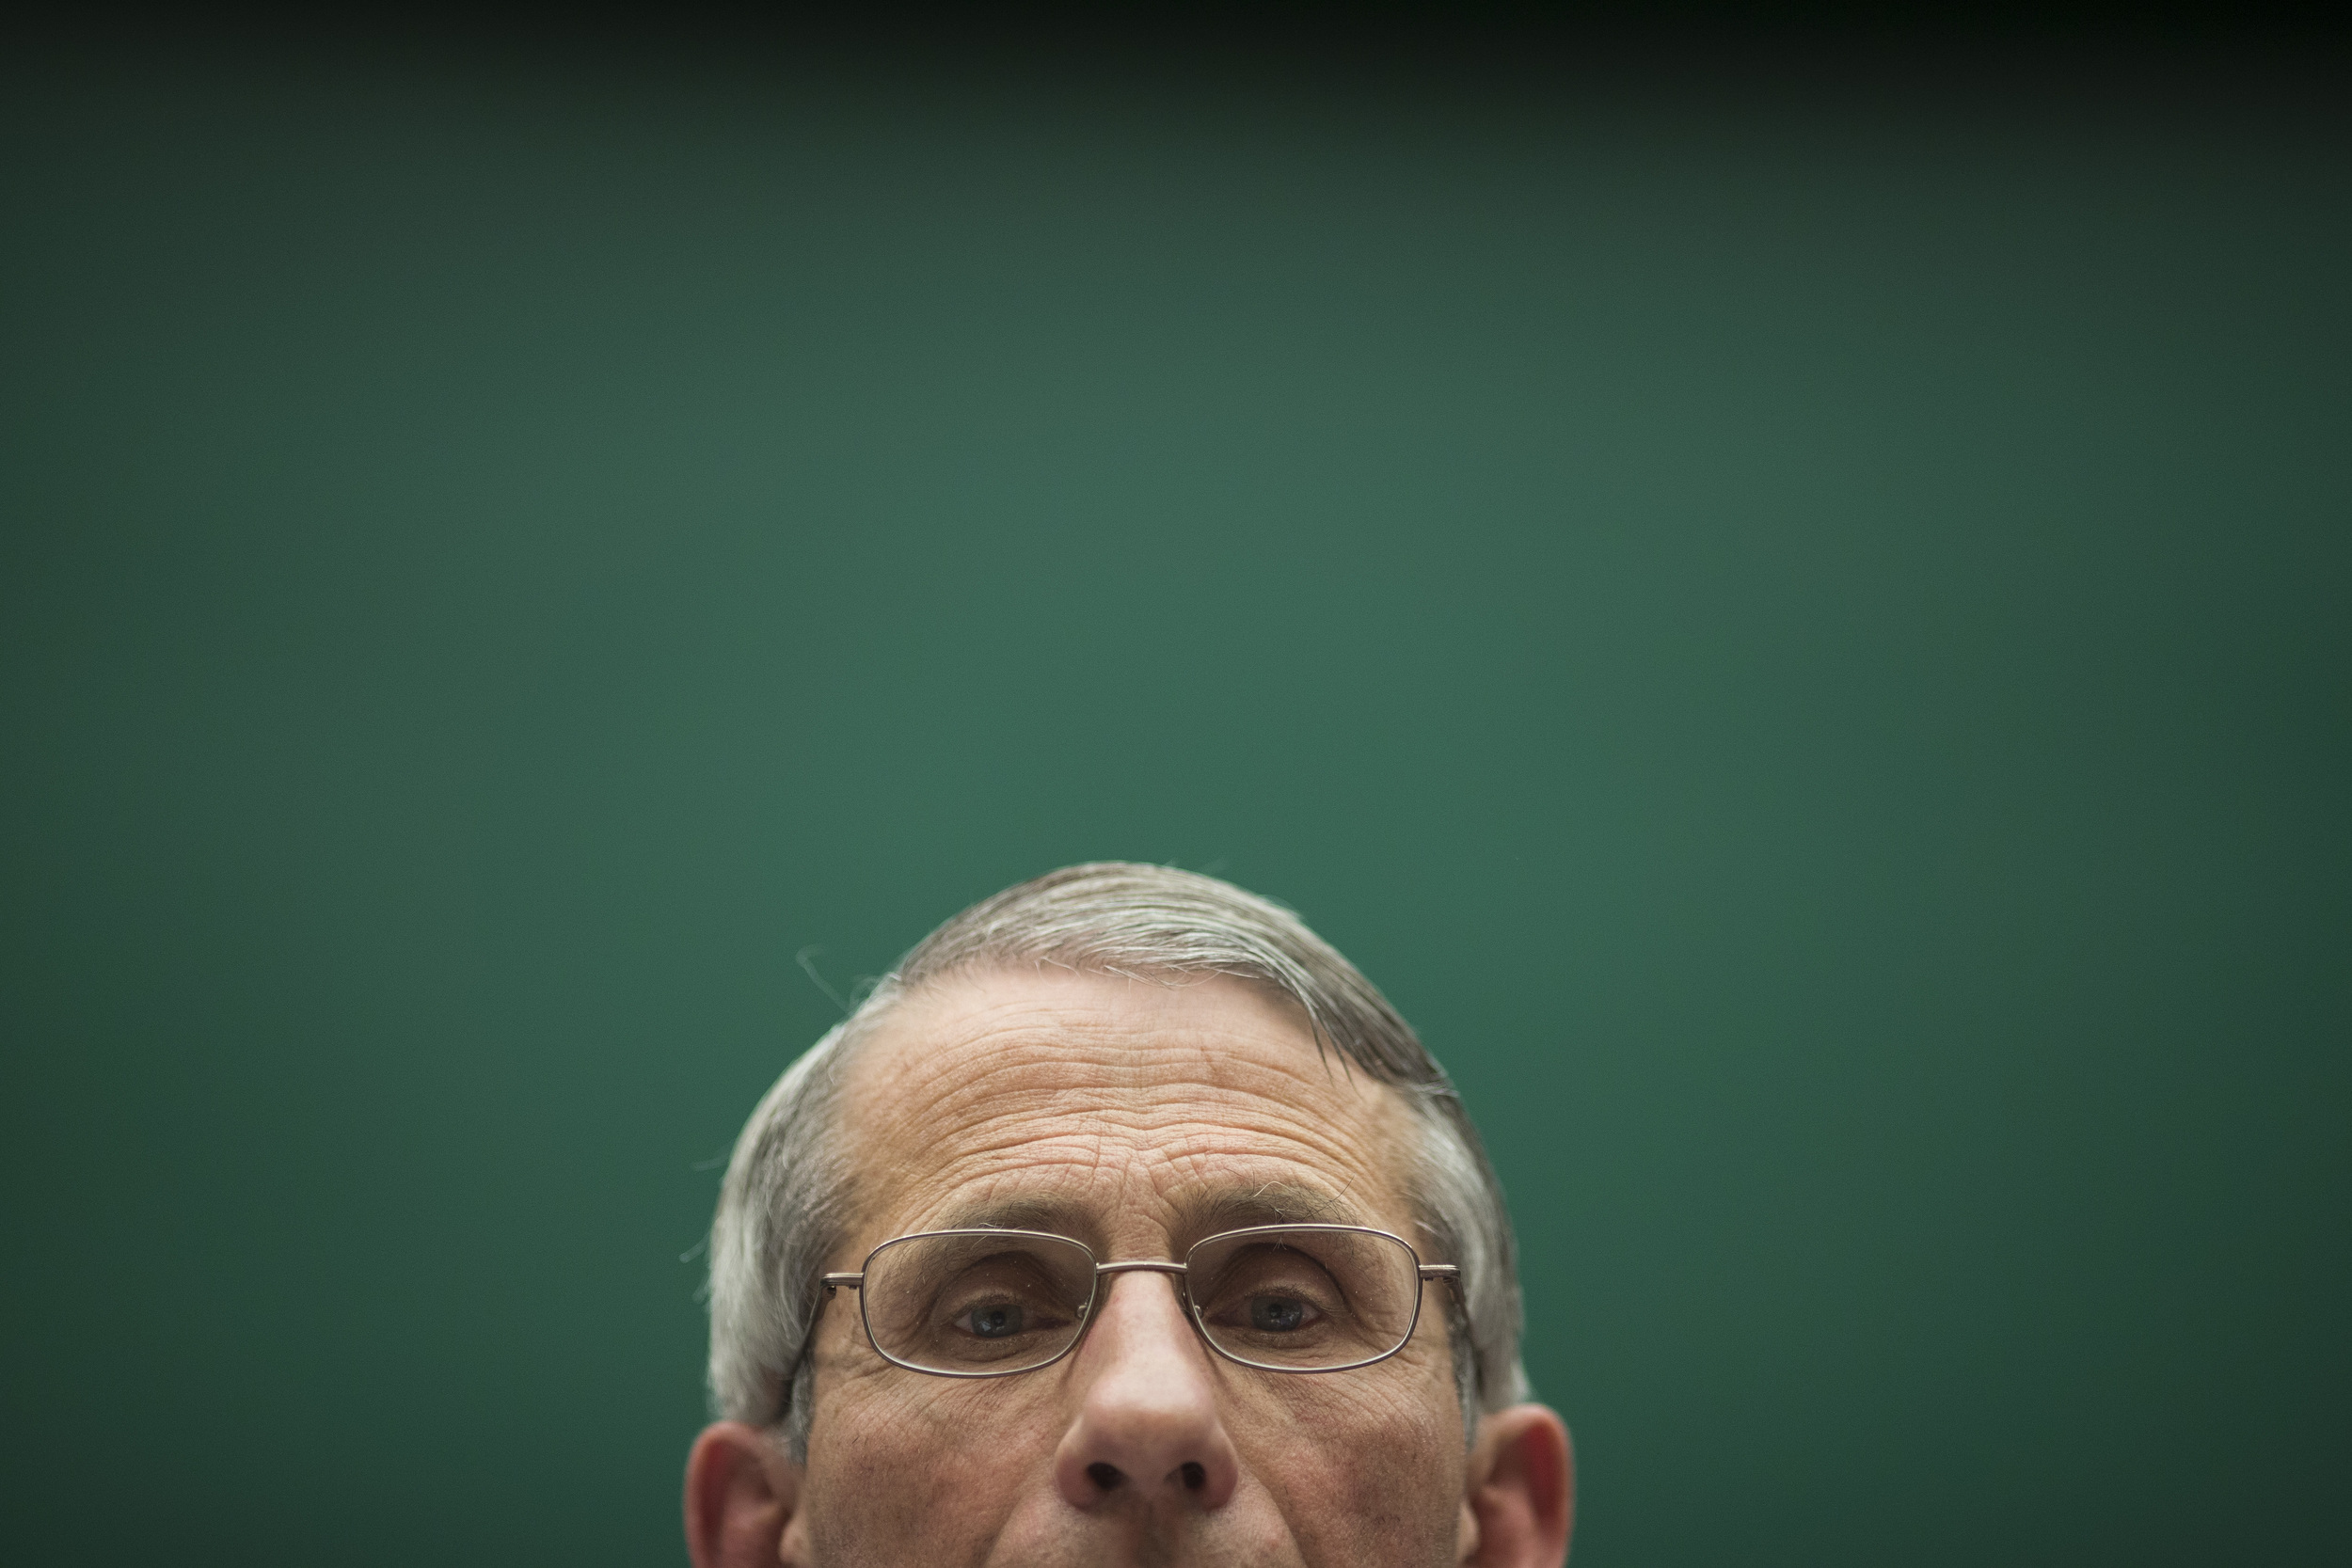 Dr. Anthony Fauci, director of The National Institute of Allergy and Infectious Diseases listens as lawmakers return to Capitol Hill to get answers about the Ebola outbreak from top U.S. health officials at the White House in Washington, DC. on Thursday October 16, 2014. The House Energy and Commerce Committee's Subcommittee on Oversight and Investigations holds a hearing to examine the government's response to contain the disease and whether America's hospitals and health care workers are adequately prepared for Ebola patients.